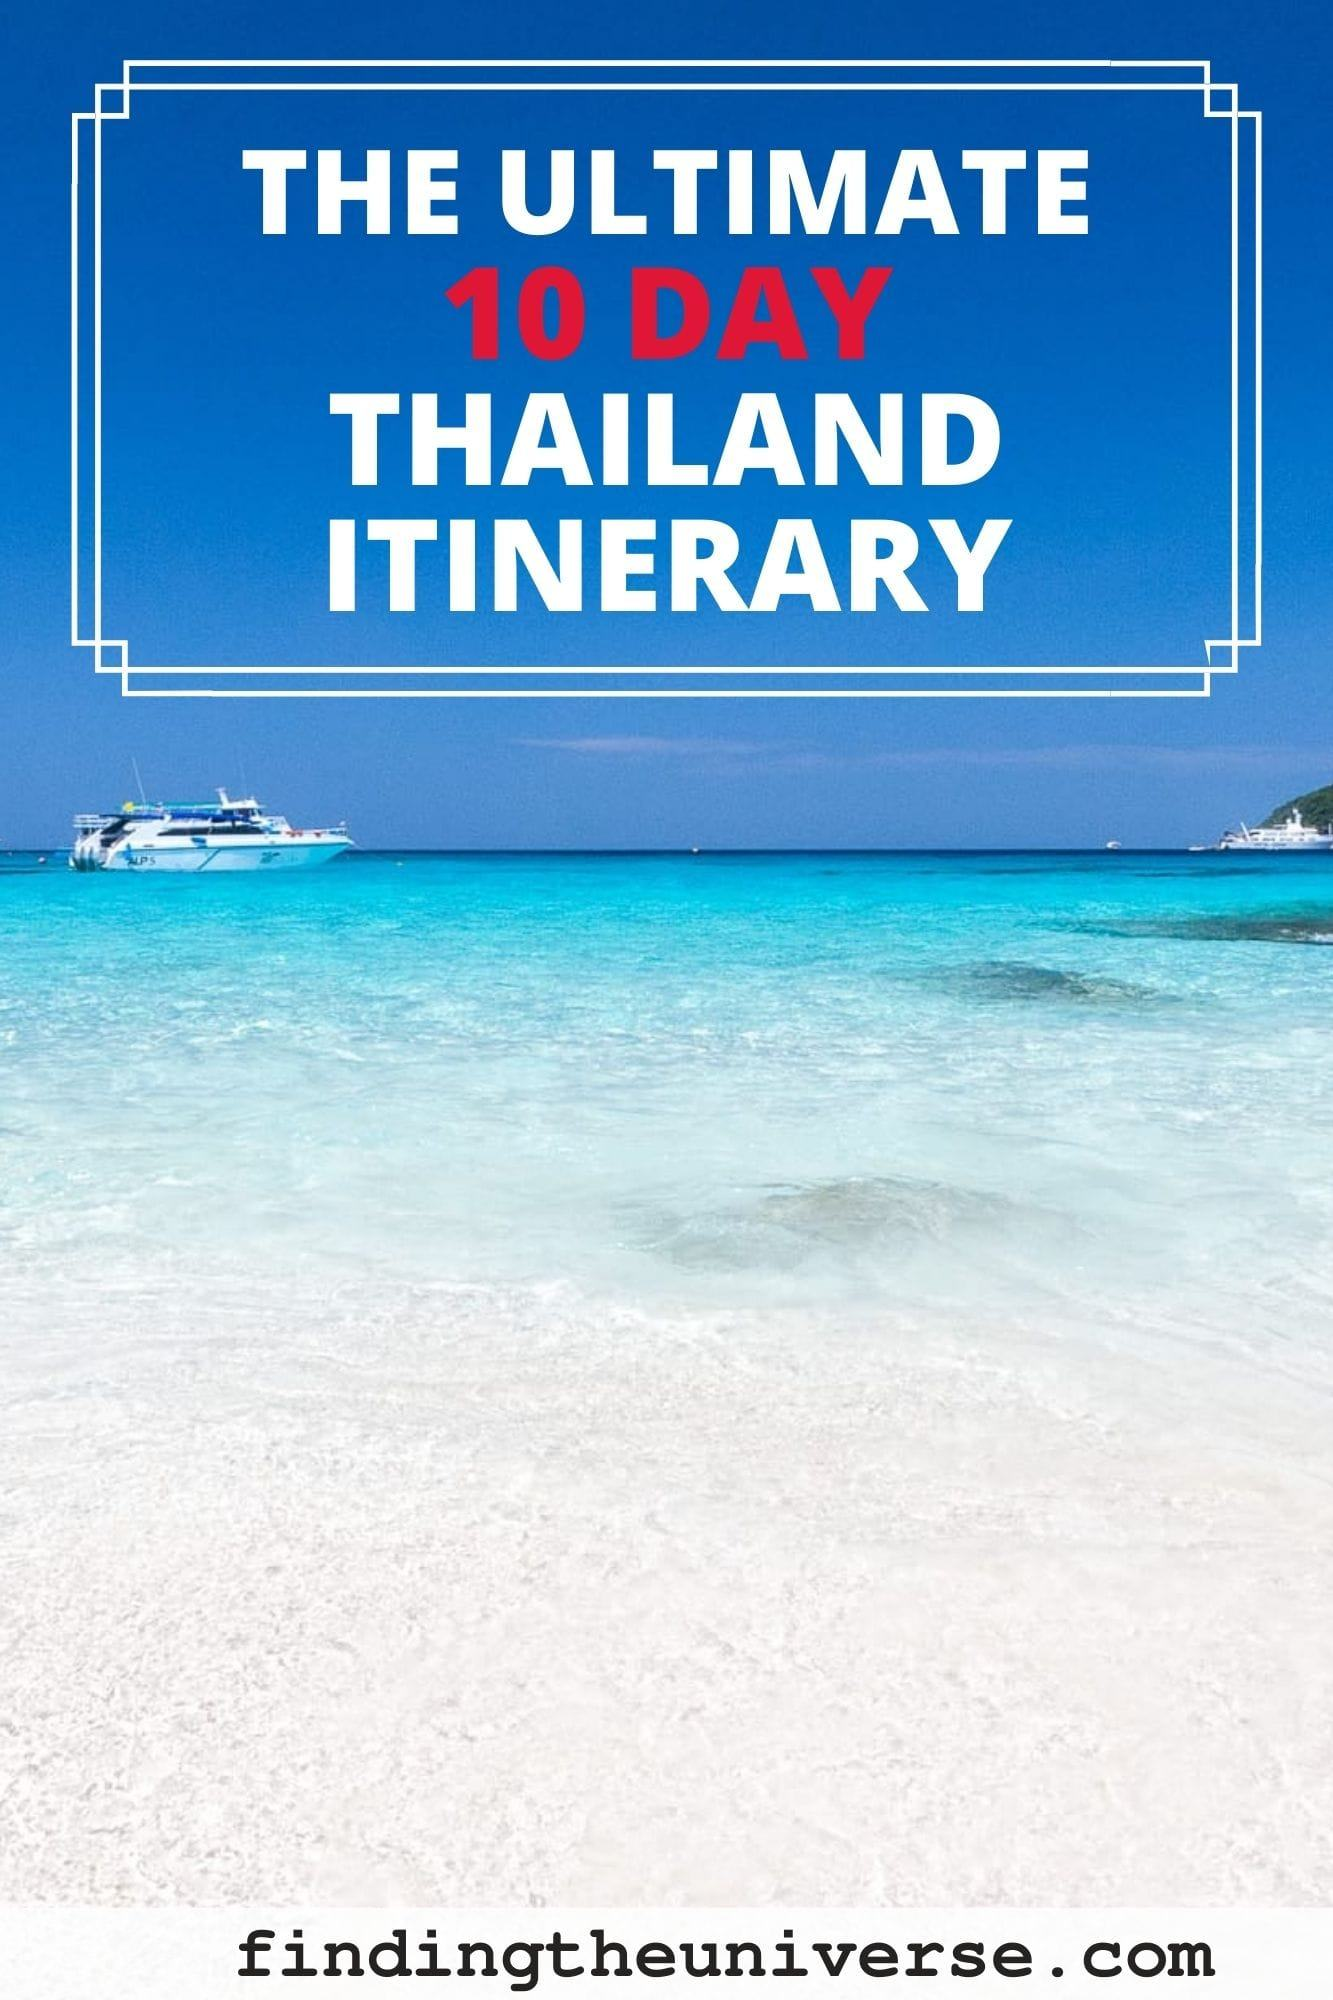 A detailed 10 day Thailand itinerary. Day by day break down of what to see and do, where to go, how to get there and where to stay!